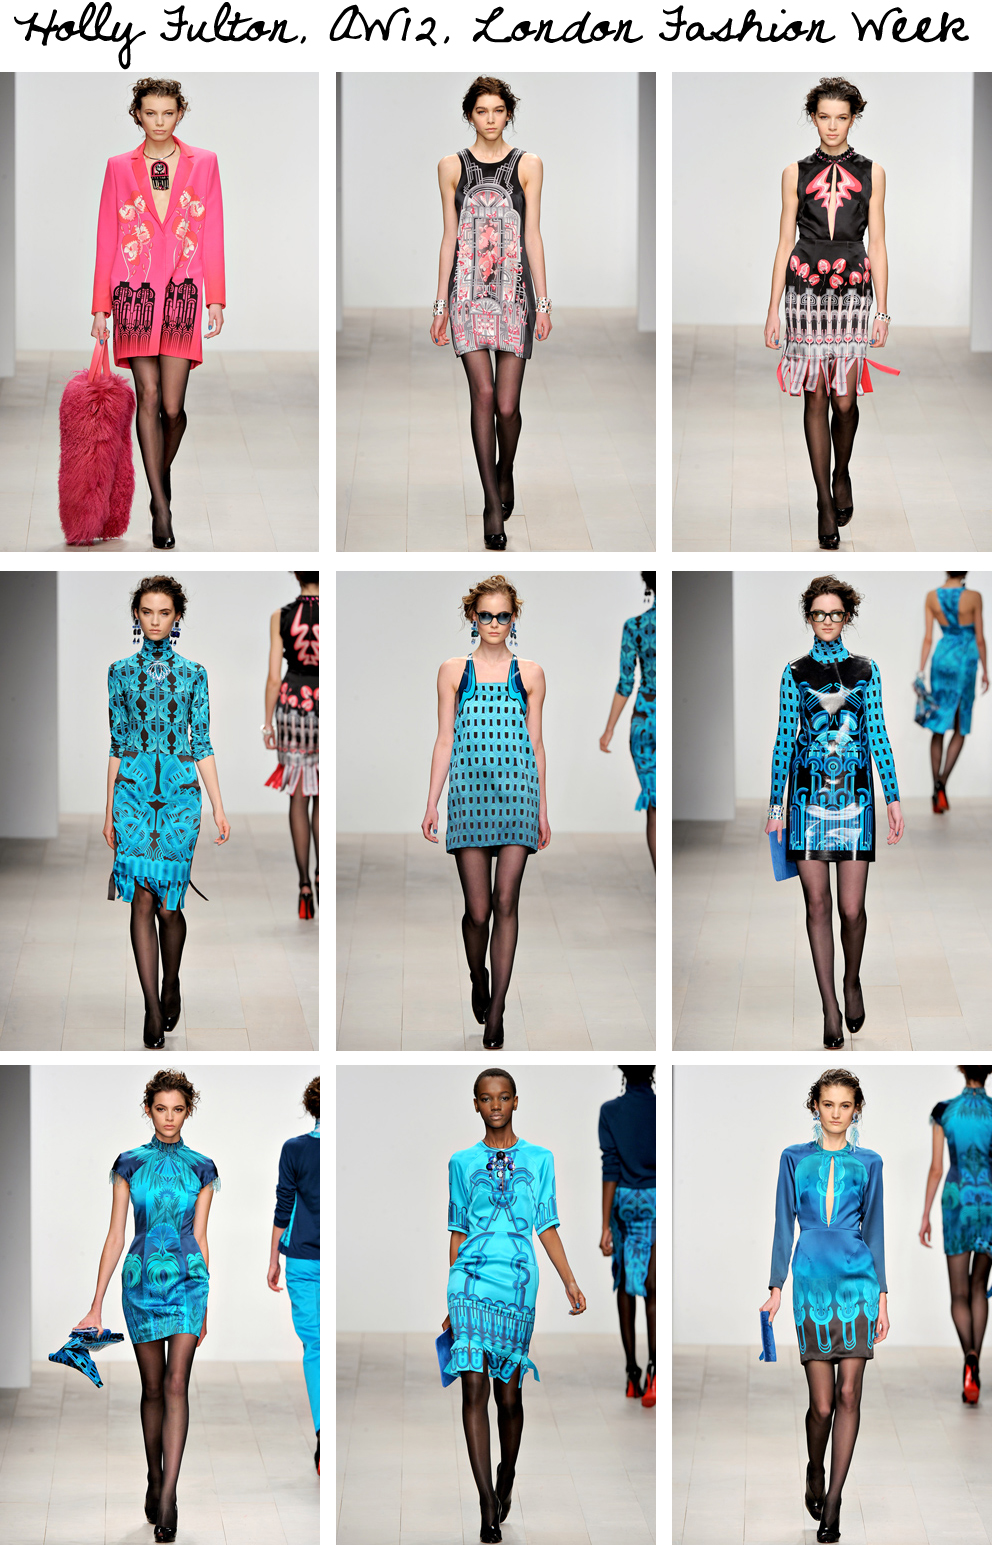 Holly Fulton AW12